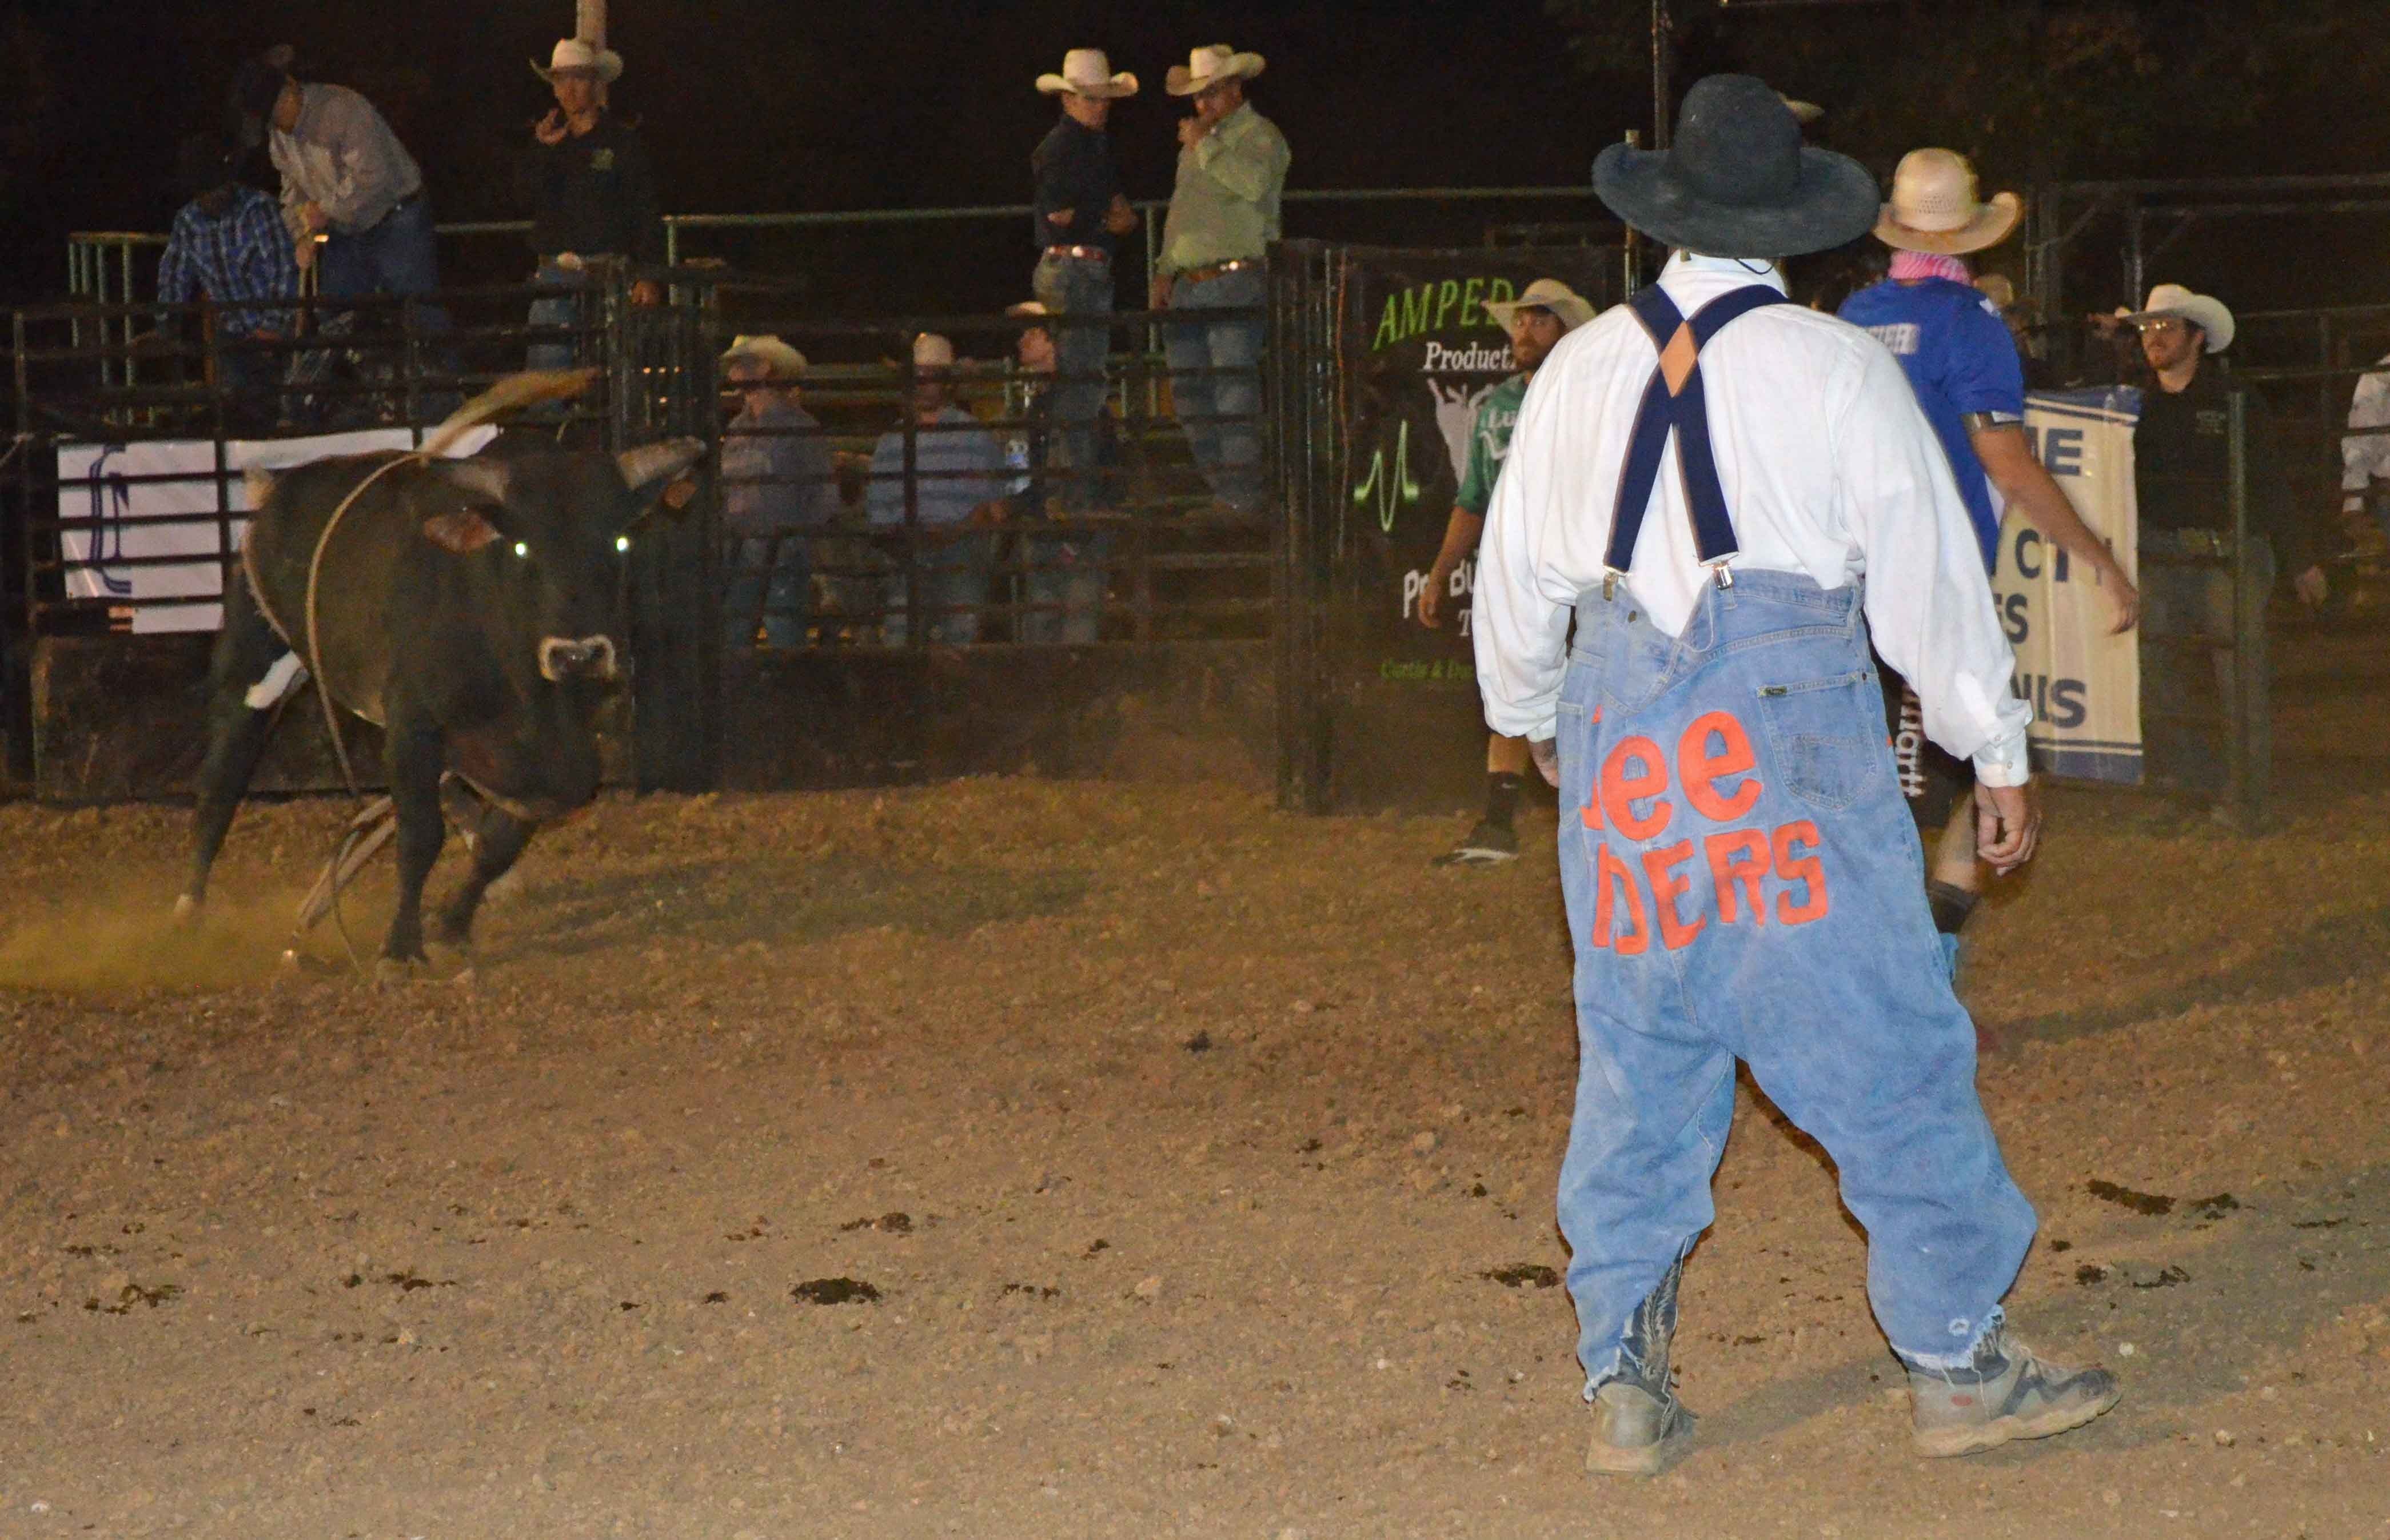 Controversial Rodeo Clown Makes First Appearance Since Mo